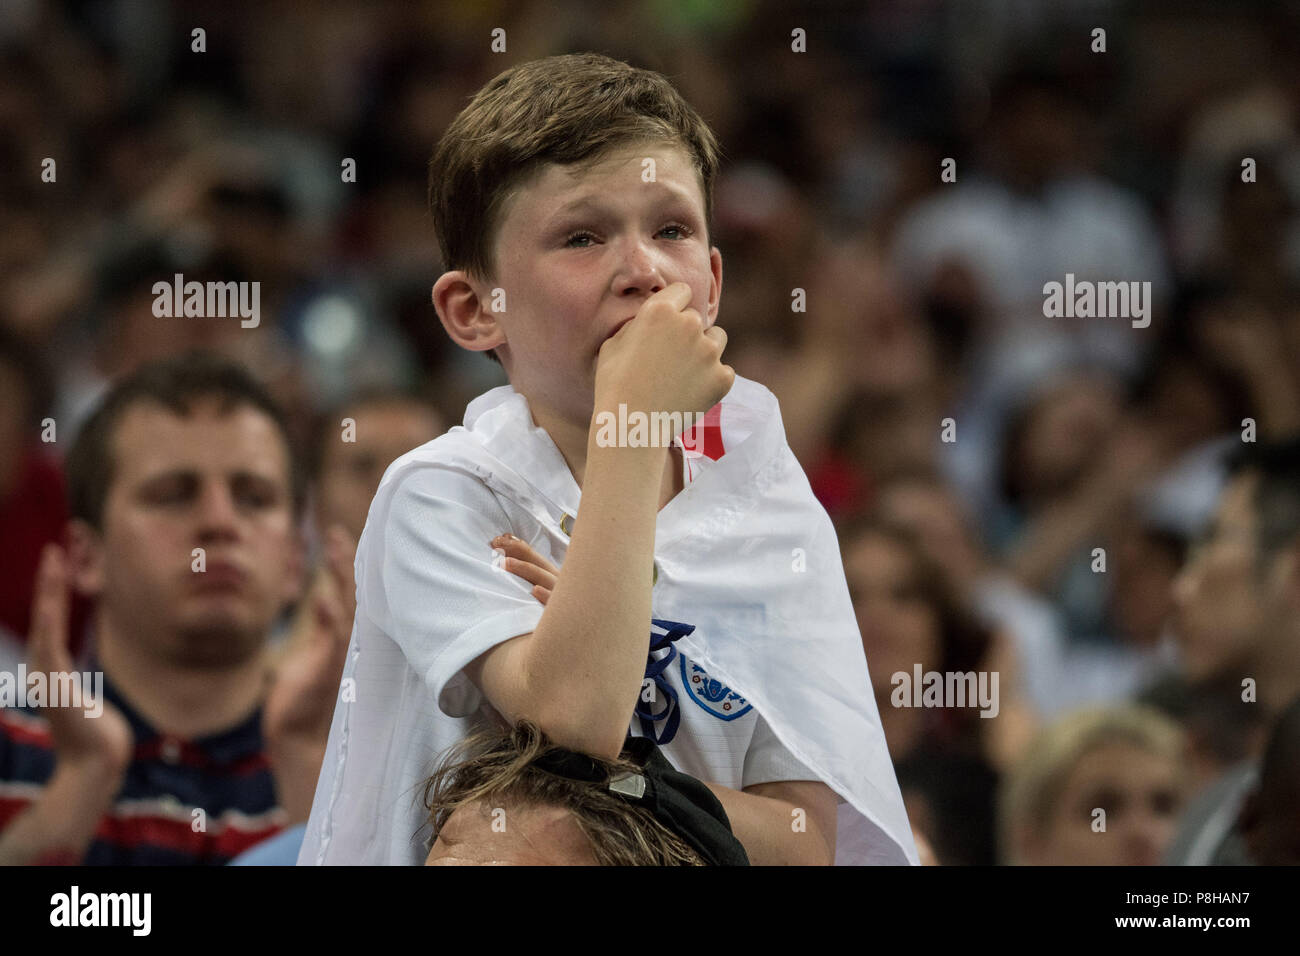 A small English fan cries bitterly, boy, child, fans, spectators, supporters, supporter, half figure, half figure, crying, Croatia (CRO) - England (ENG) 2: 1, semi-finals, game 62, on 07/11/2018 in Moscow ; Football World Cup 2018 in Russia from 14.06. - 15.07.2018. | Usage worldwide Stock Photo